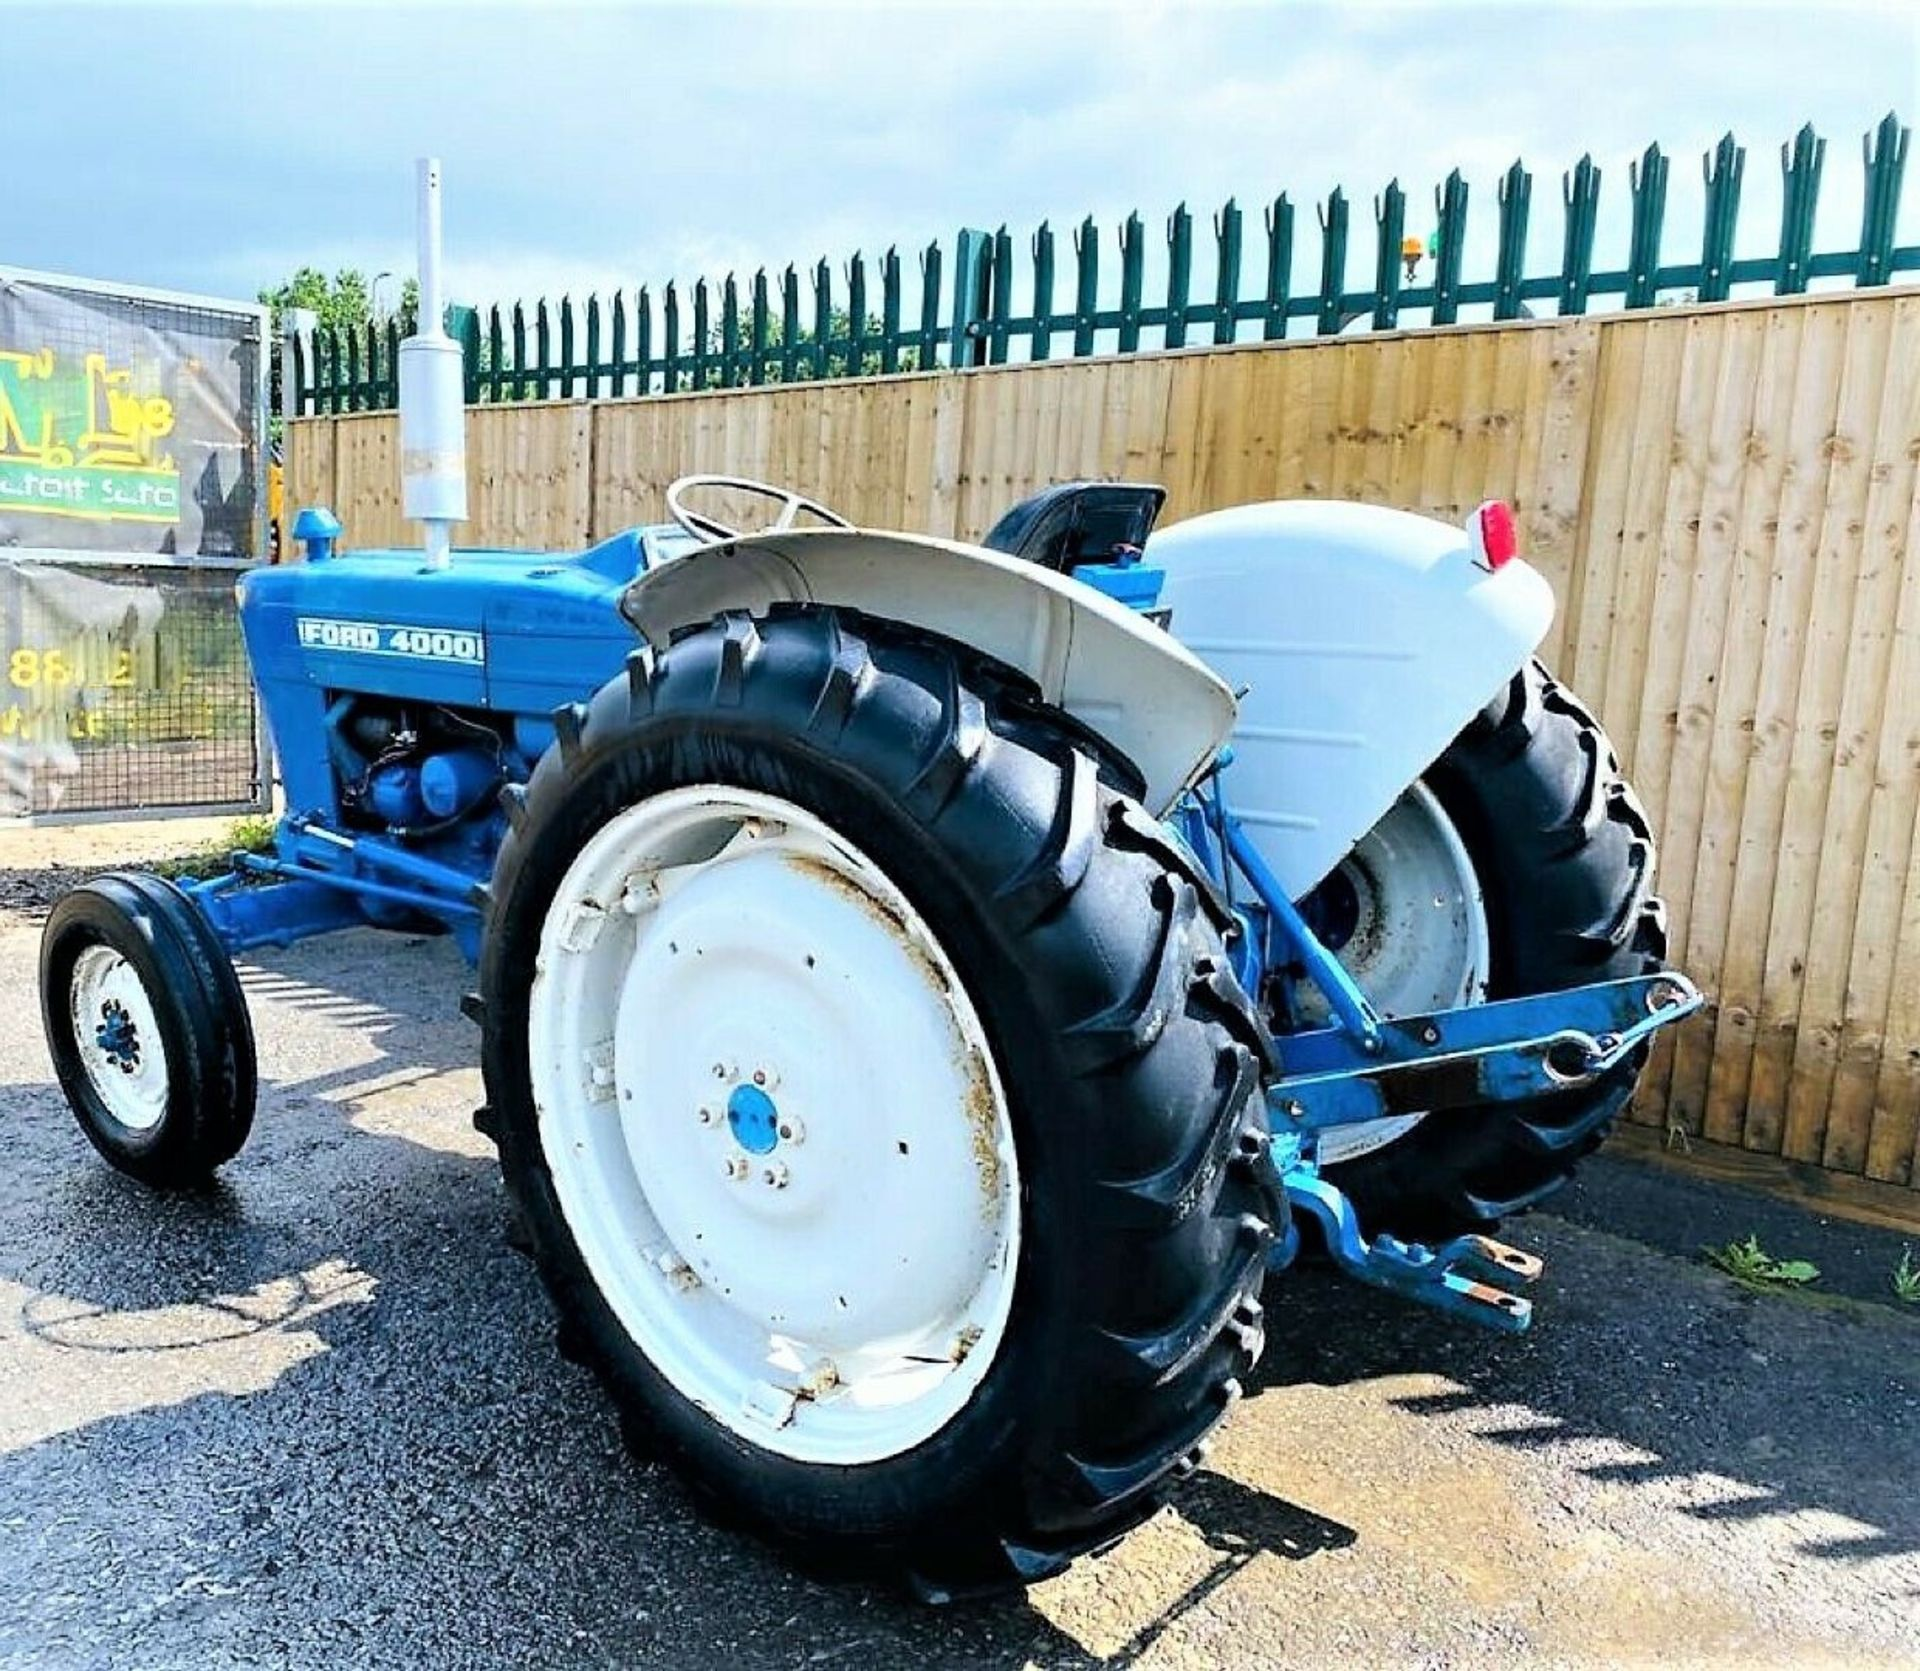 Ford 4000 Tractor 1969 - Image 7 of 12